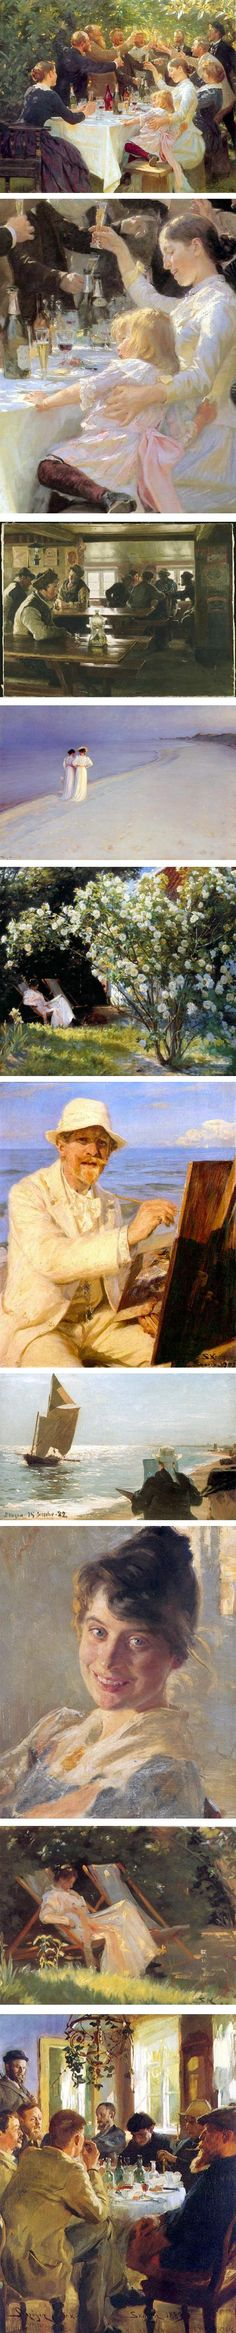 "Peder Severin Kroyer. According to Charley Parker, of linesandcolors.com ""He studied at the Royal Danish Academy of Art, traveled Europe and studied in Paris, where he was introduced to the work of the French Impressionists, an influence that resonates in his open, painterly, color-filled later work."" Just gorgeous!"